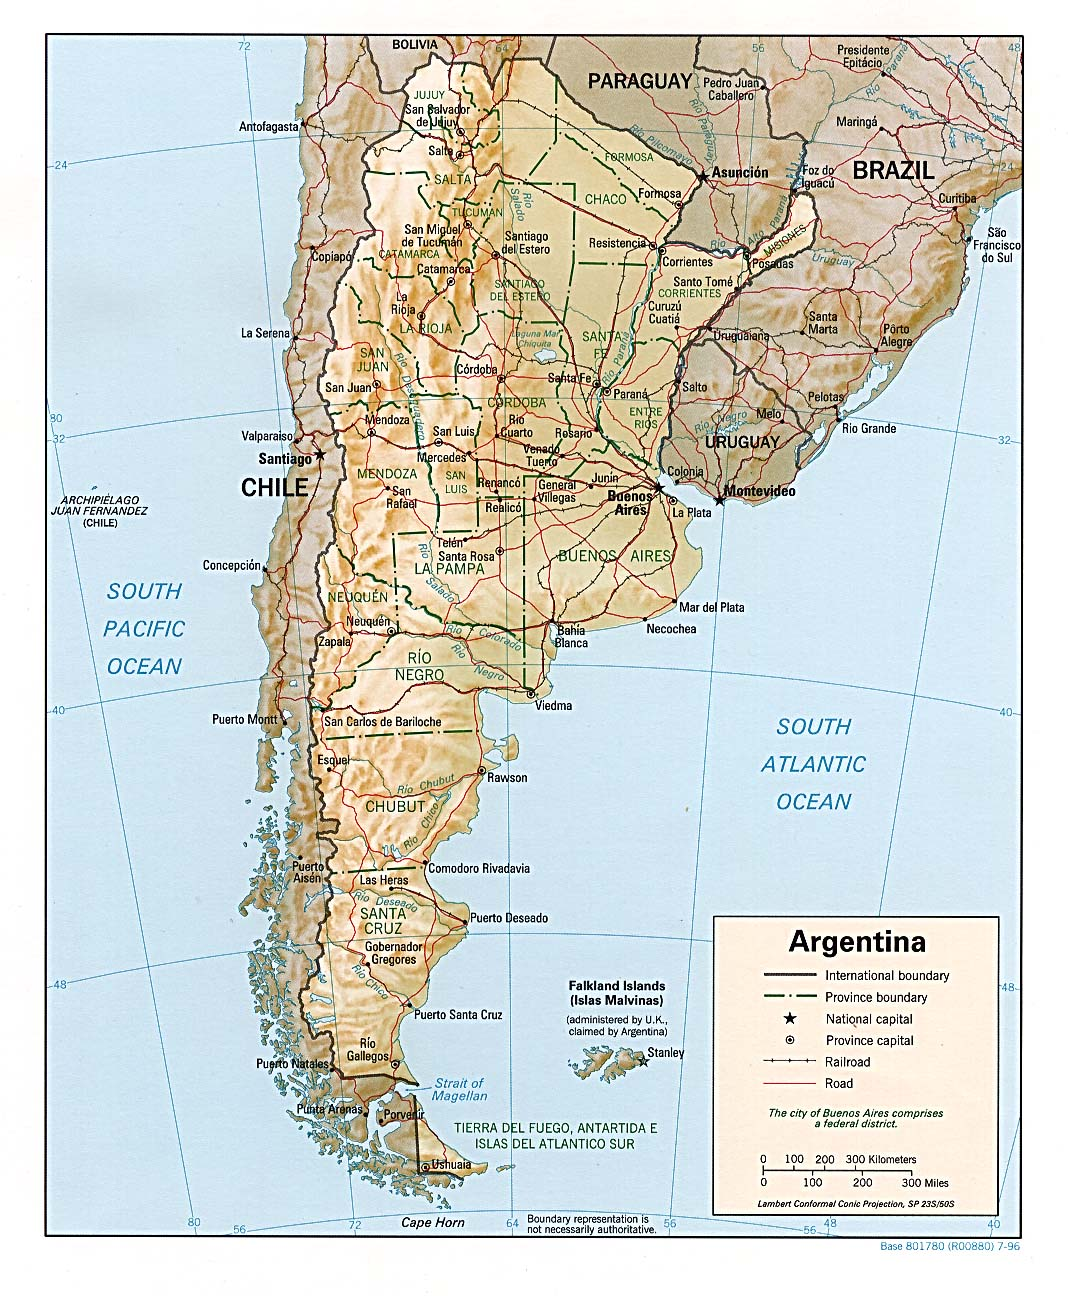 Free Download Argentina Maps - Argentina map download